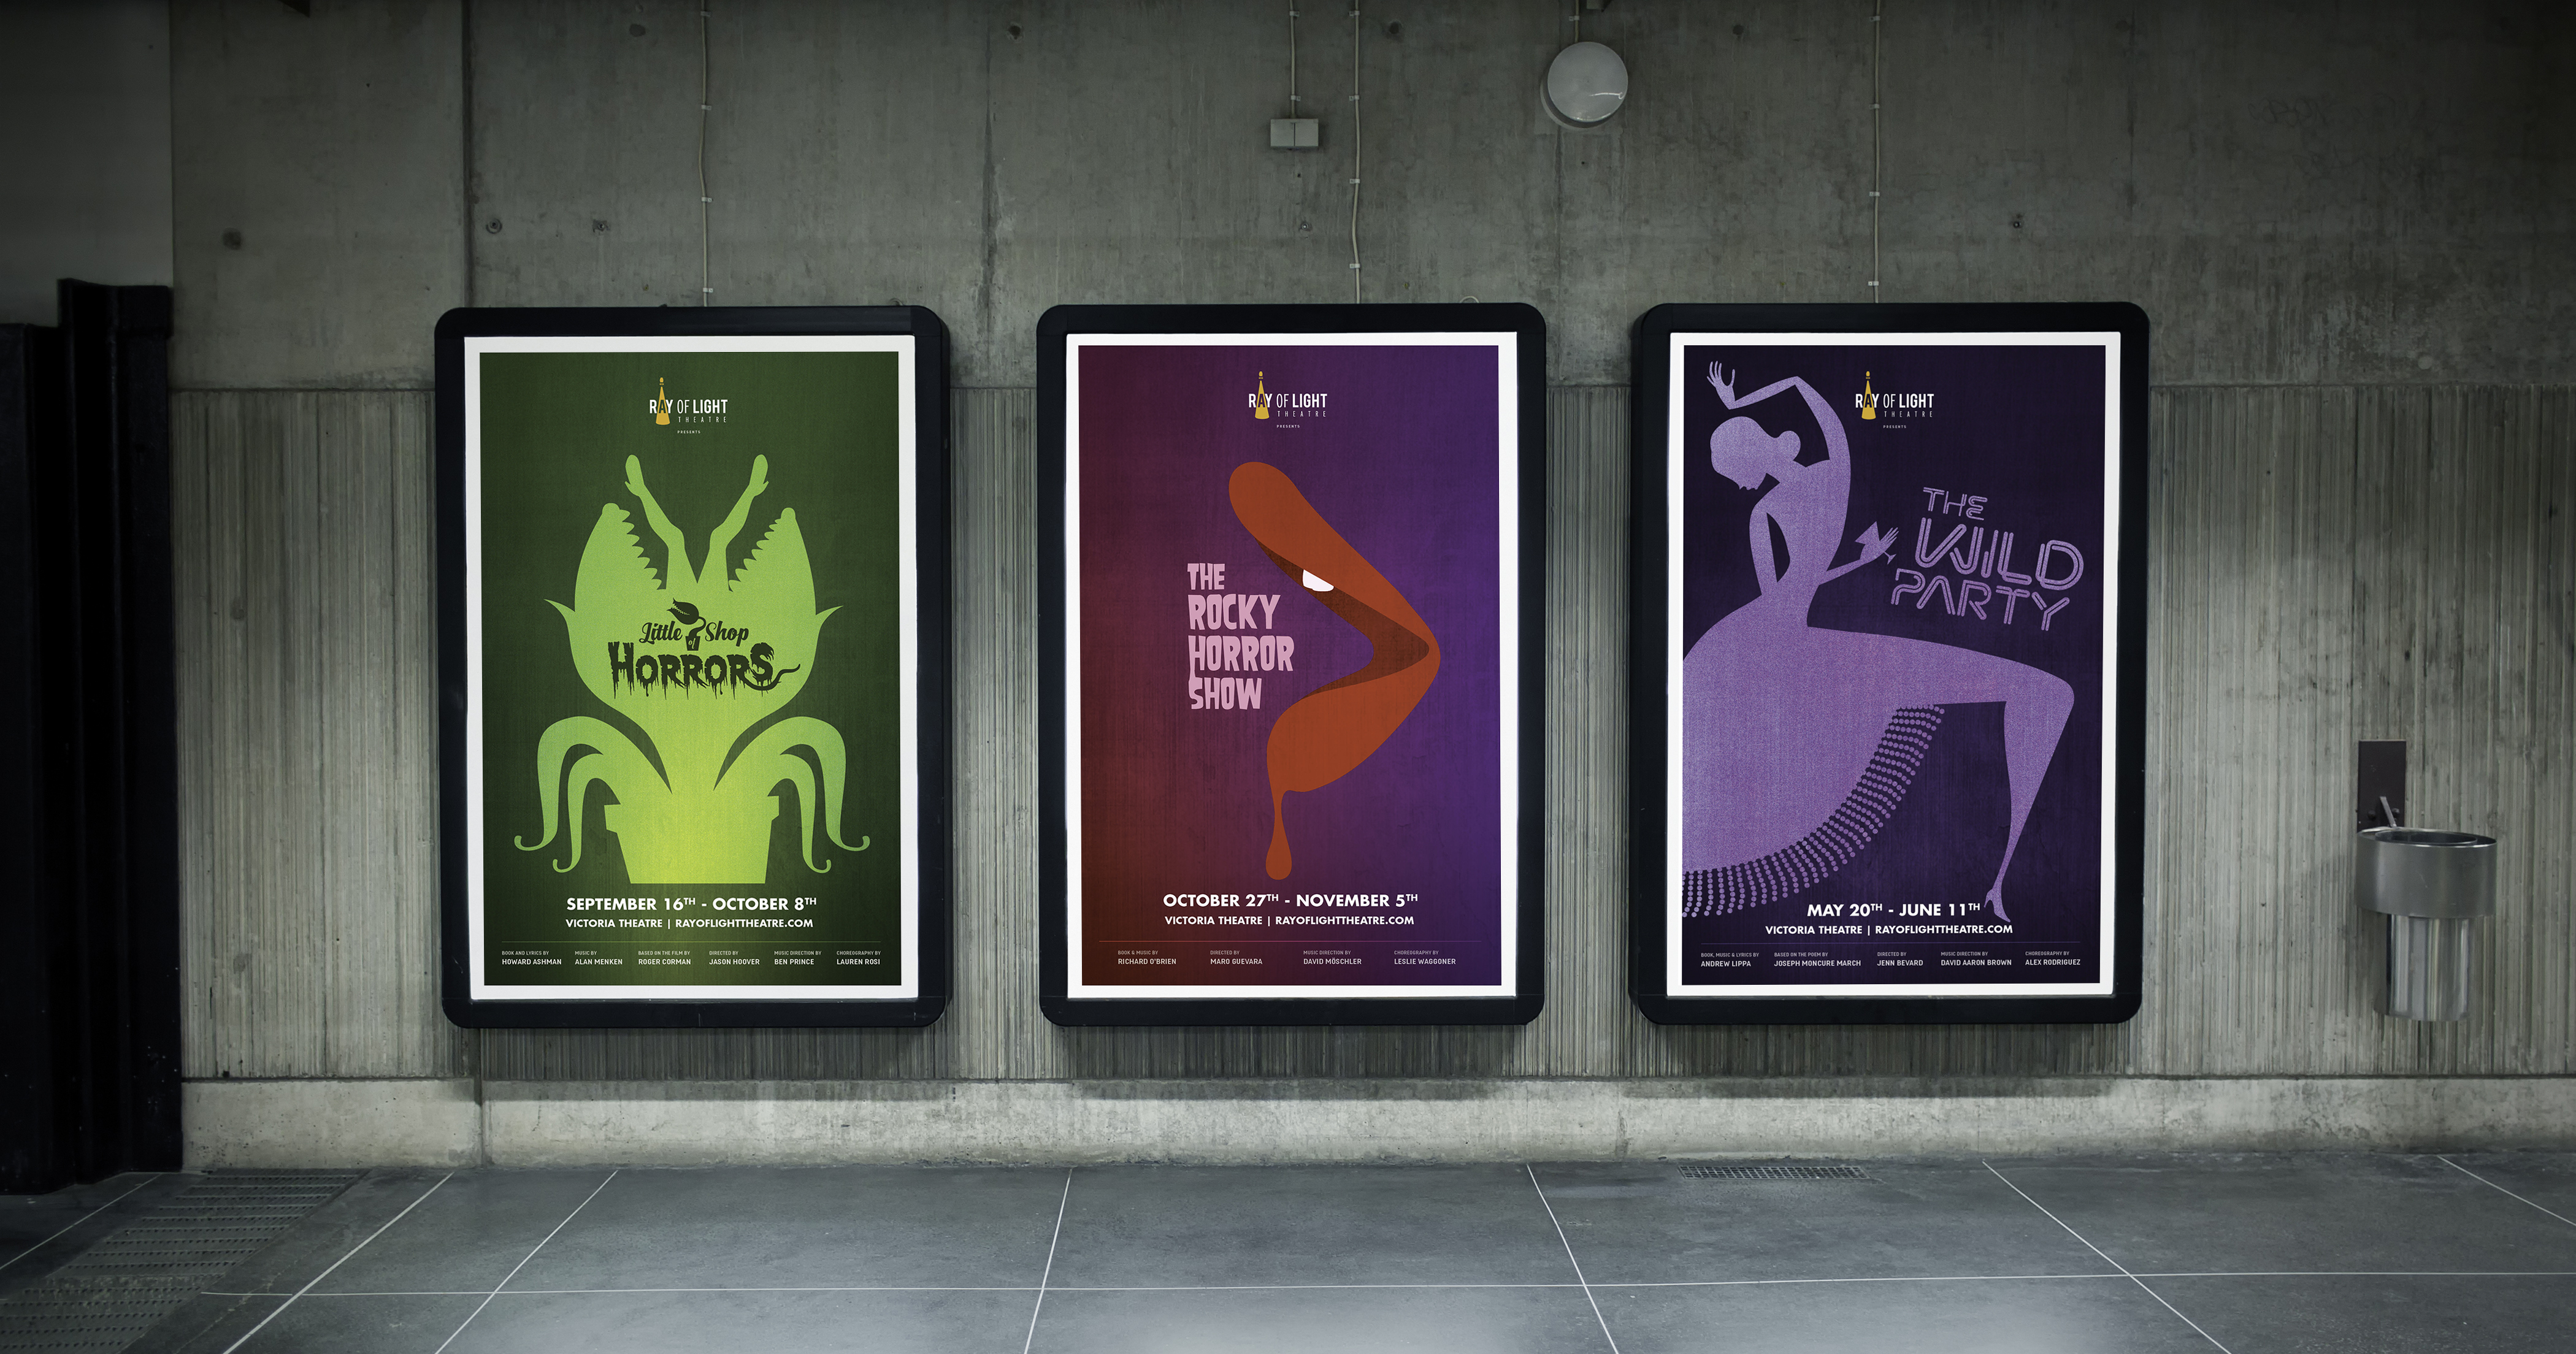 Urban posters